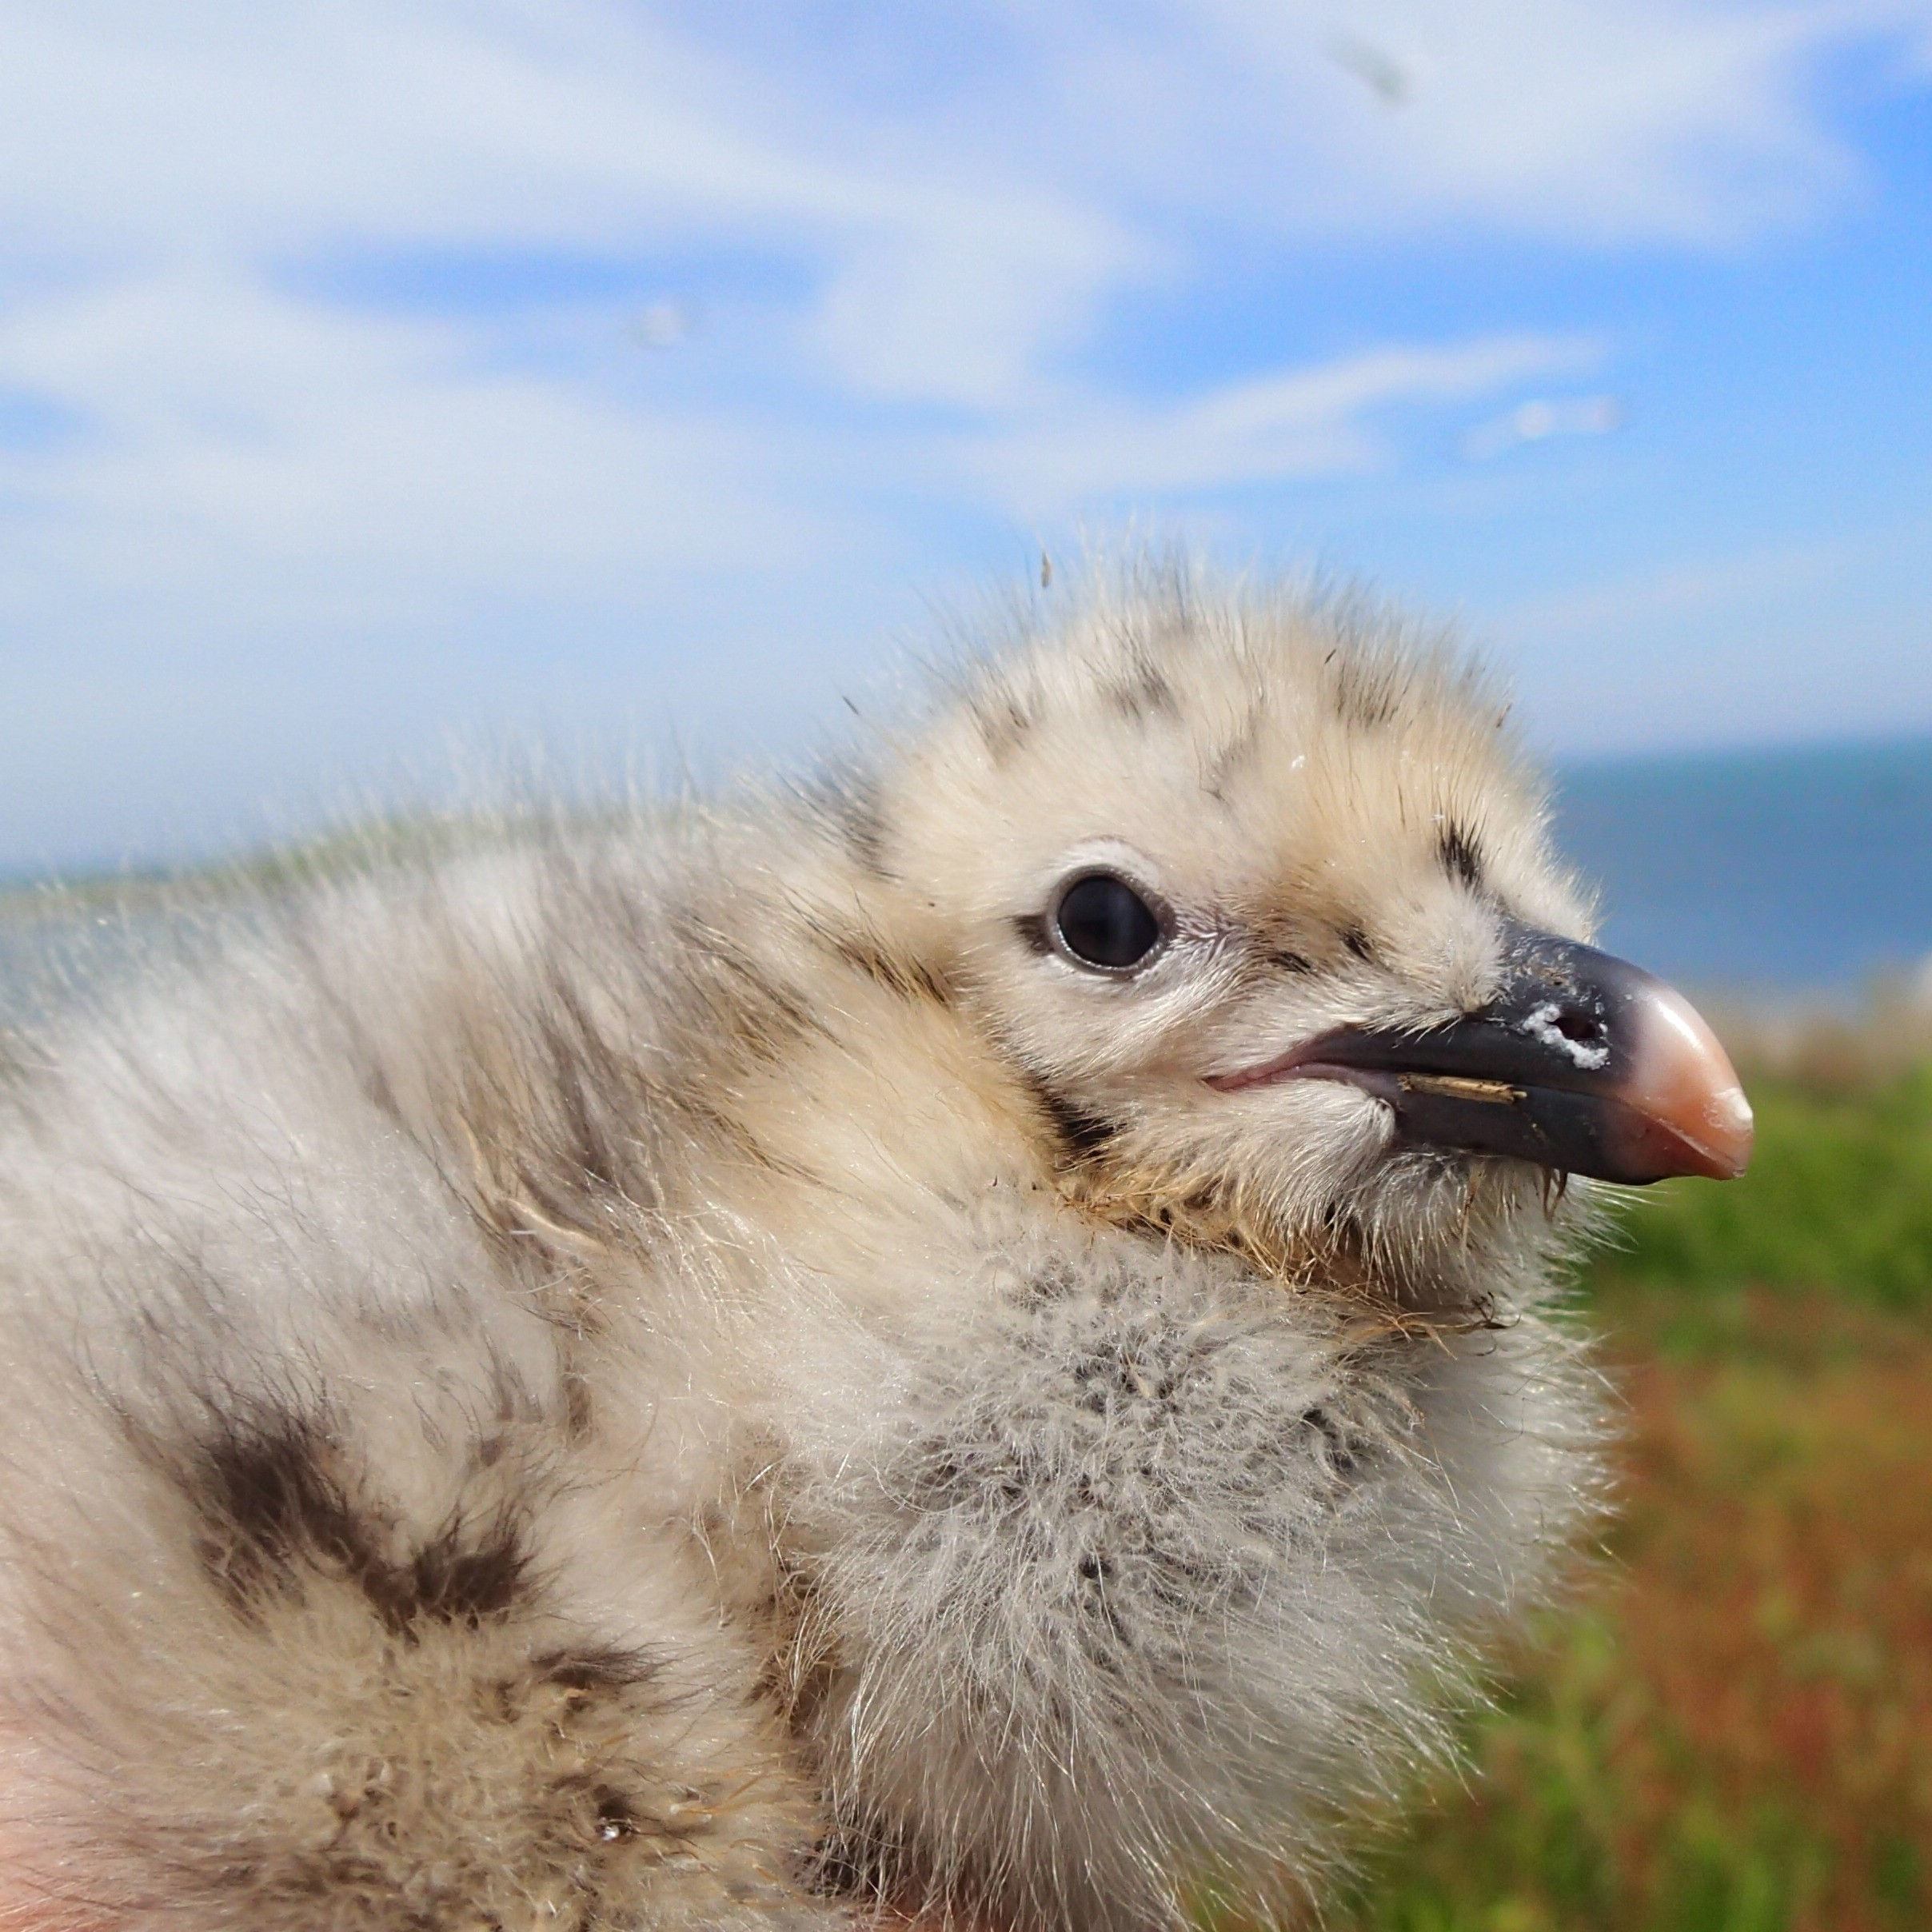 A Herring Gull chick. Both Herring Gull and Black Back chicks resemble puff balls when dry after hatching.